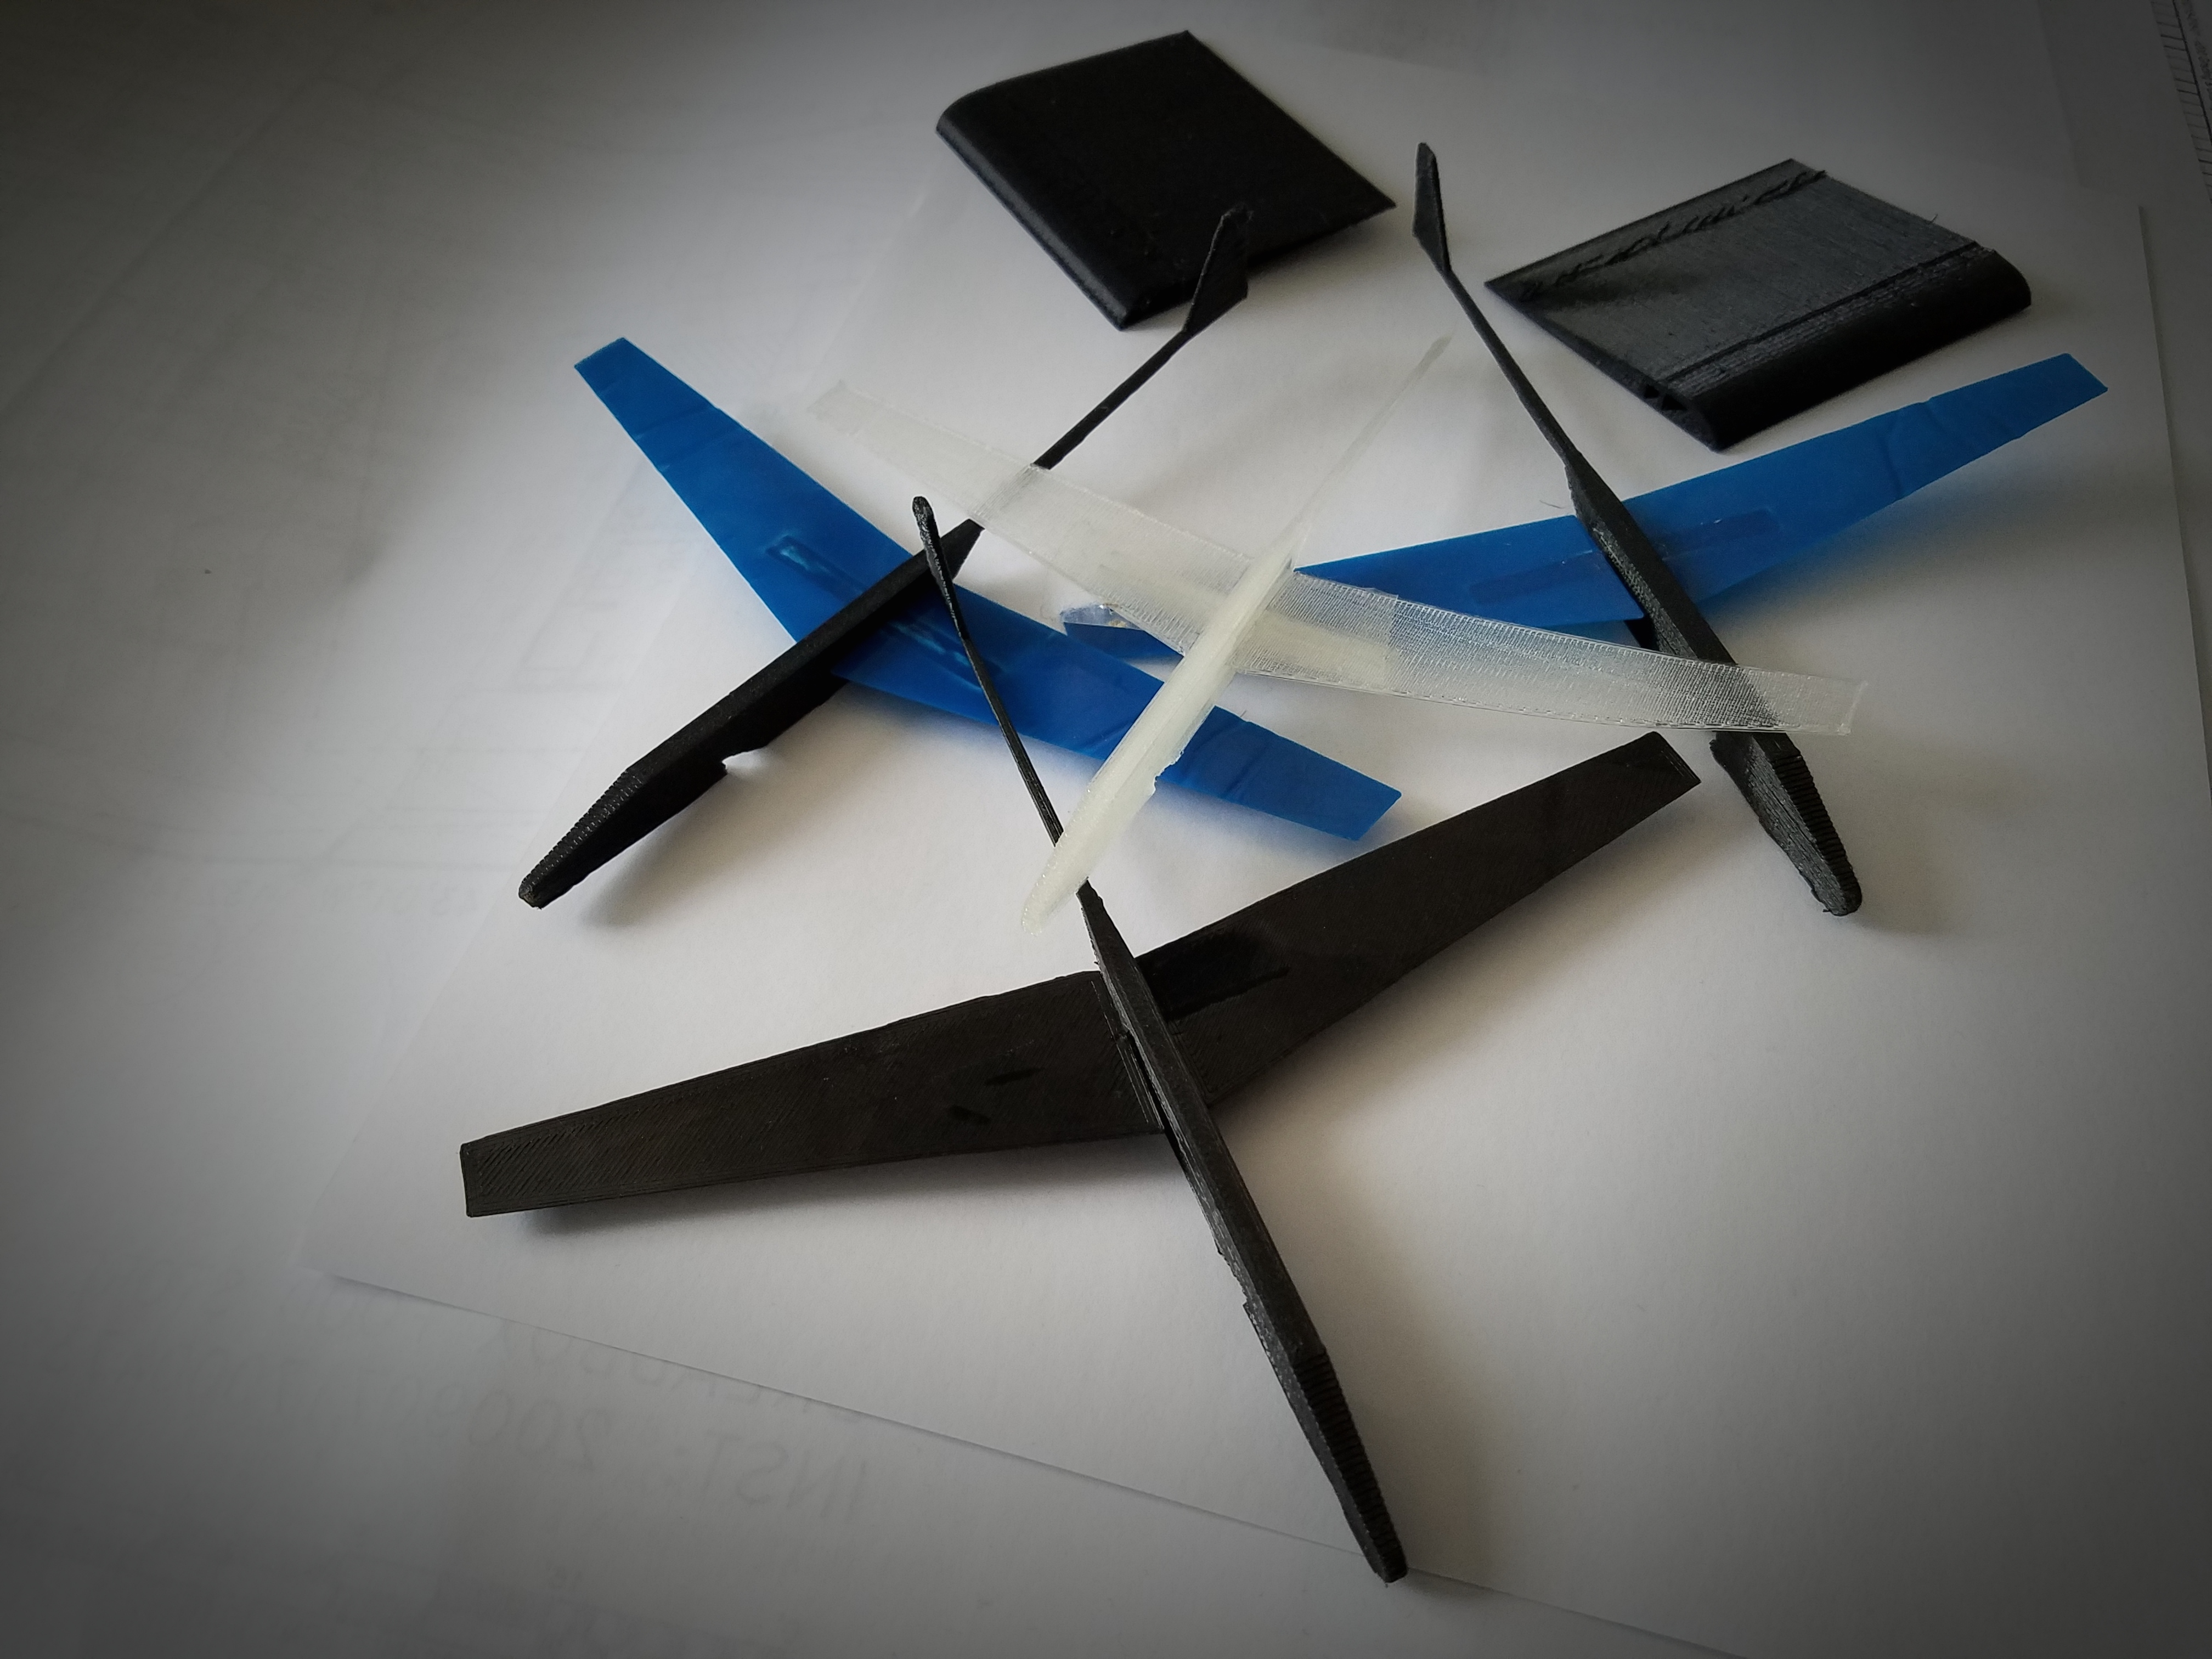 Project: Rubberband Glider by insane66 - Thingiverse